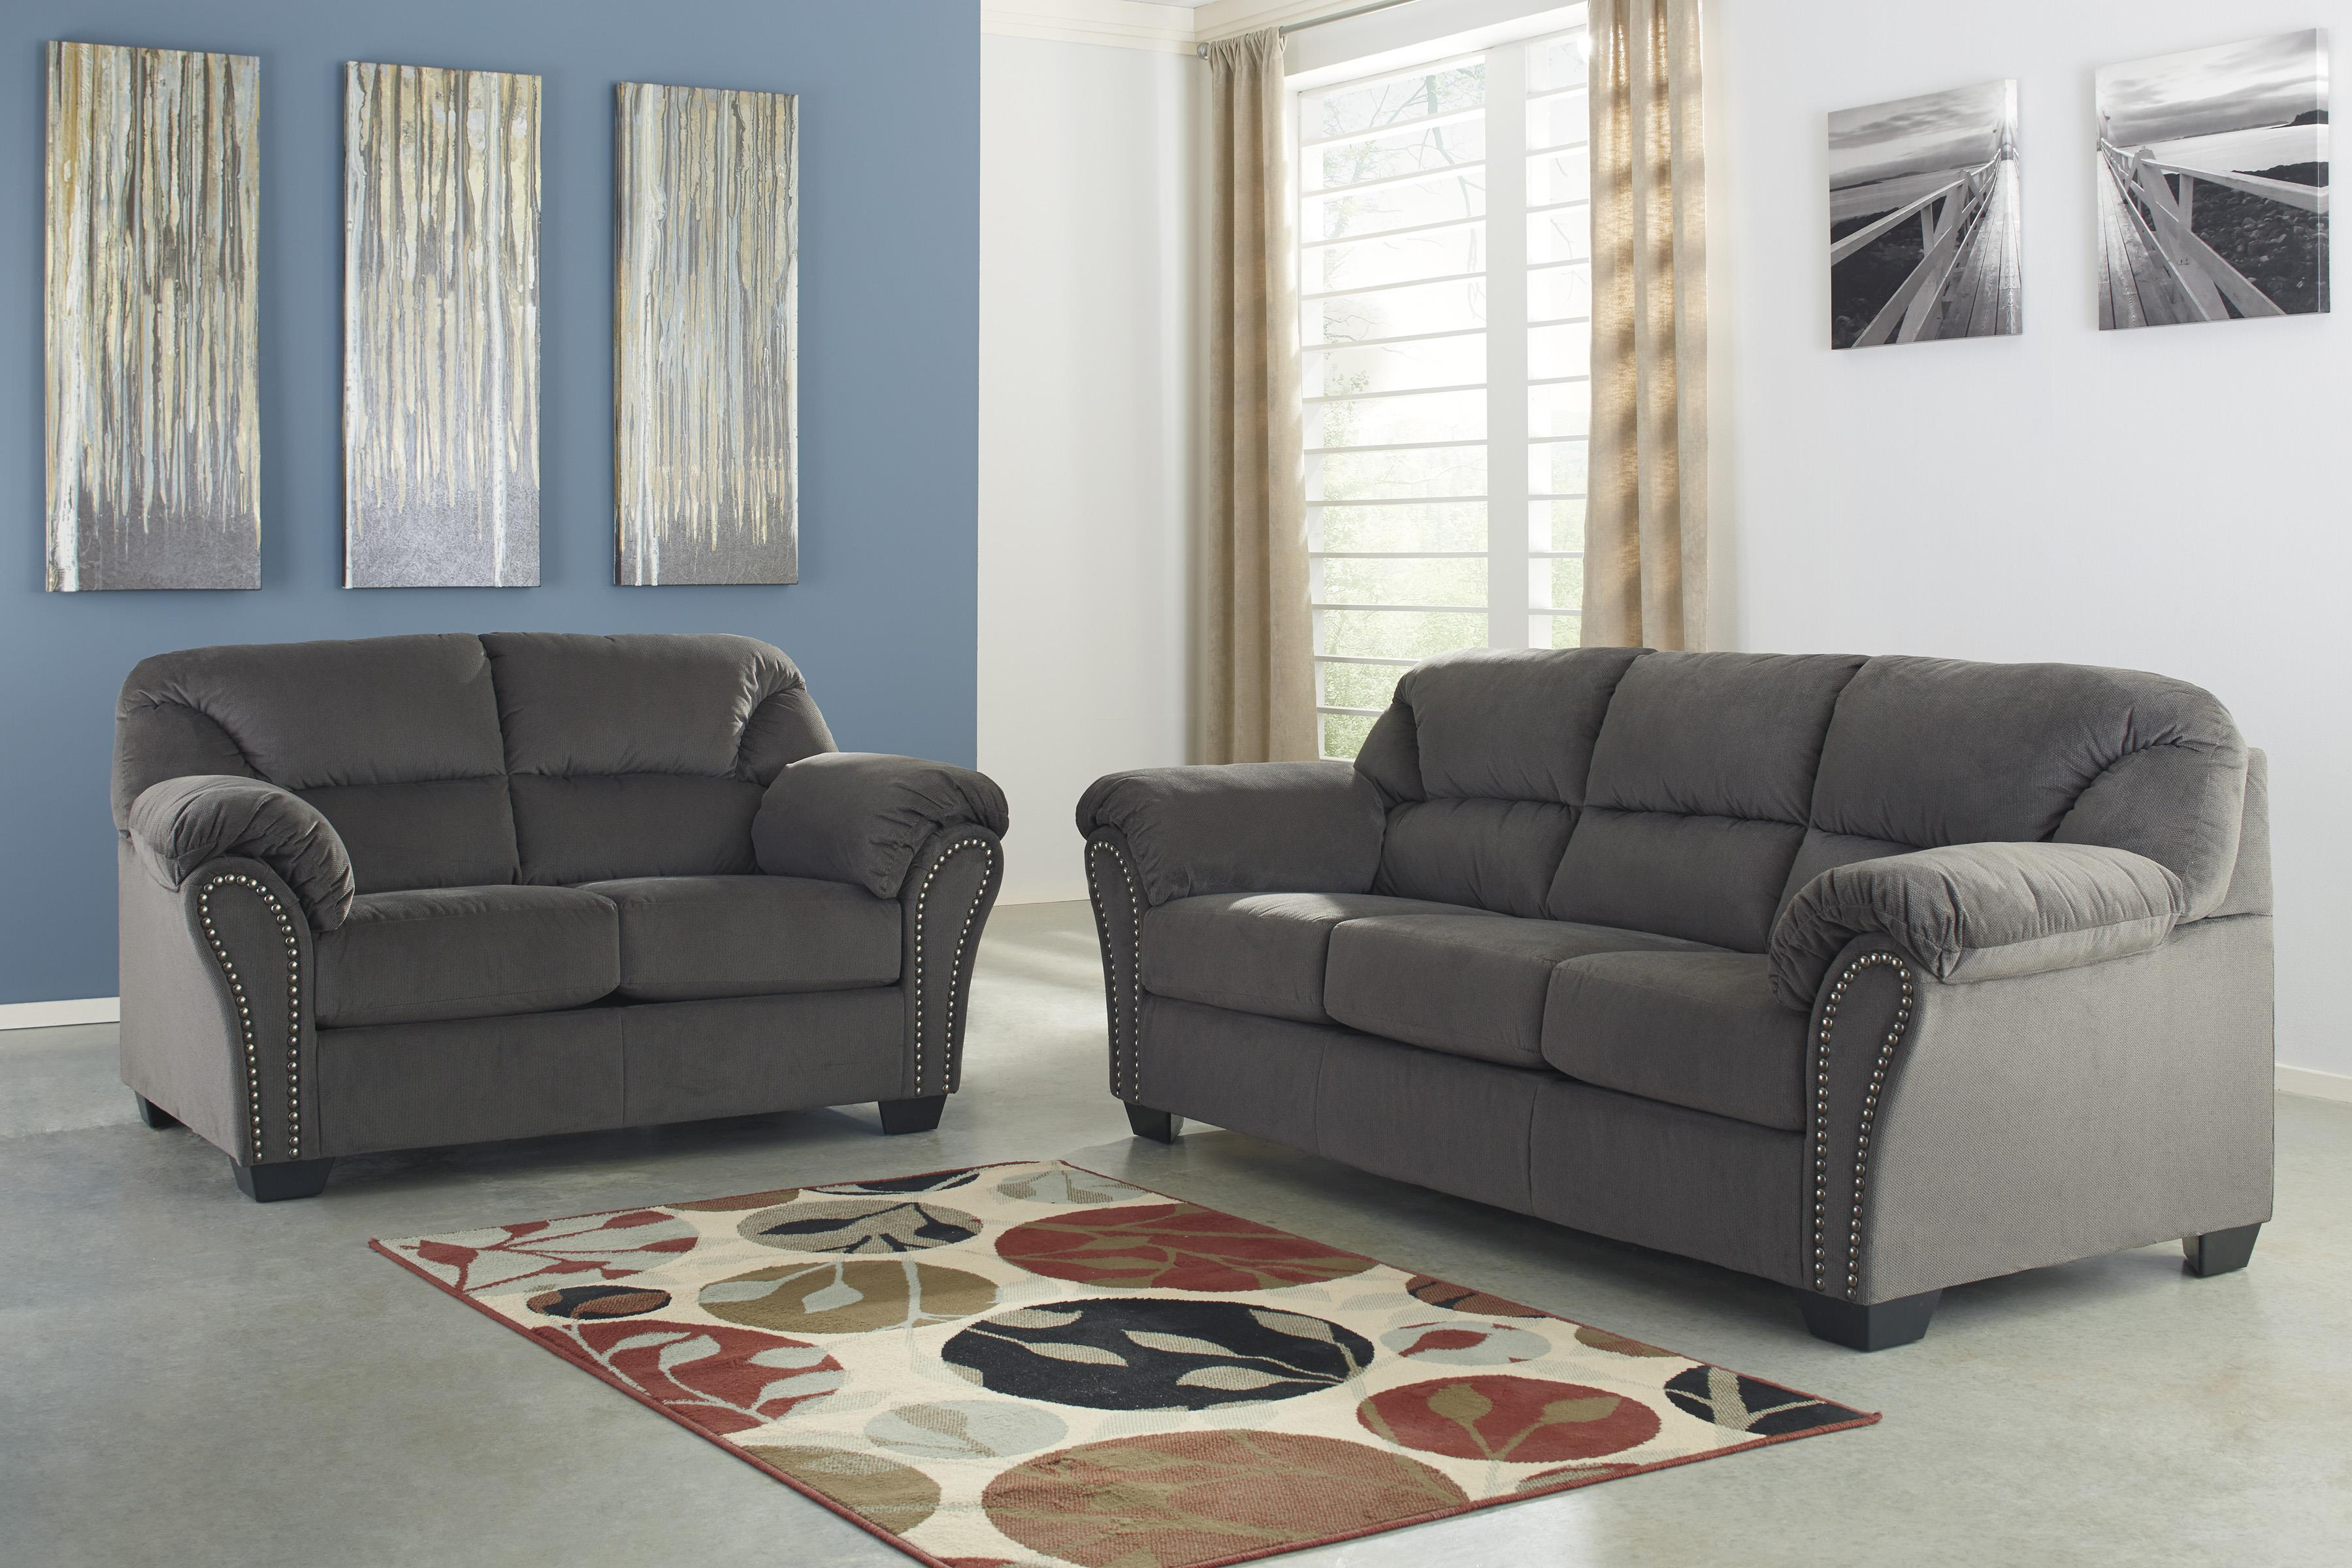 Signature Design by Ashley Kinlock Stationary Living Room Group - Item Number: 33400 Living Room Group 2